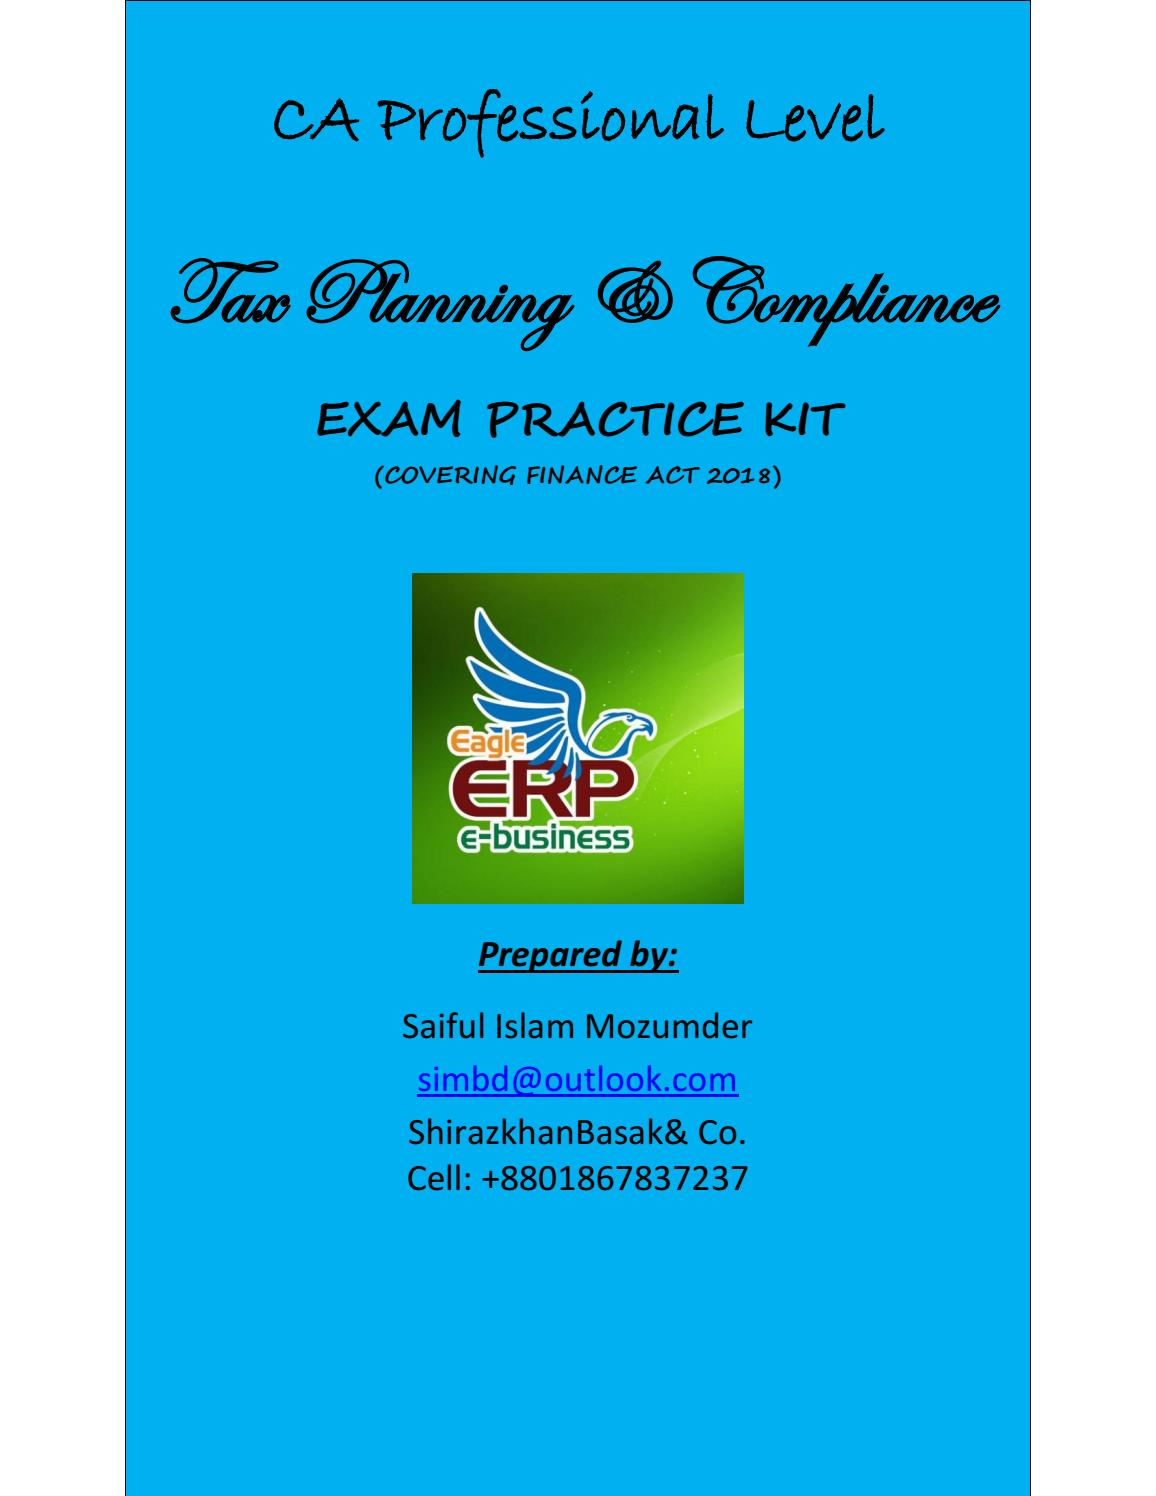 Draft Exam Practice Kit for CA Professional Level Tax